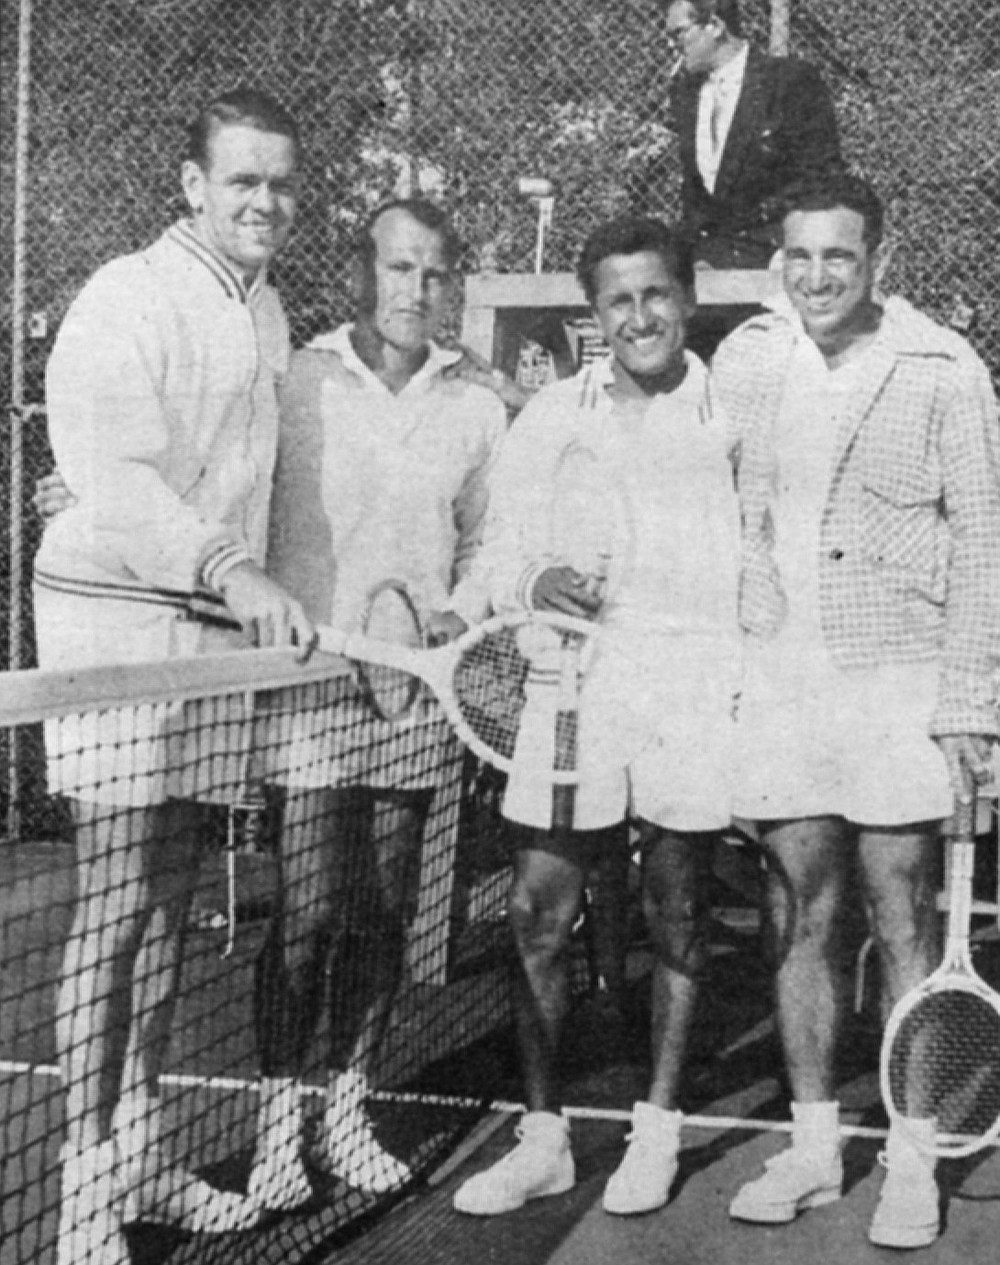 """Jack Kramer, Bill Rodgers, Segura, Don Budge. Said Segura about Kramer: """"He'd go right after my weaknesses. He'd pound my backhand, then make me try to pass him."""""""